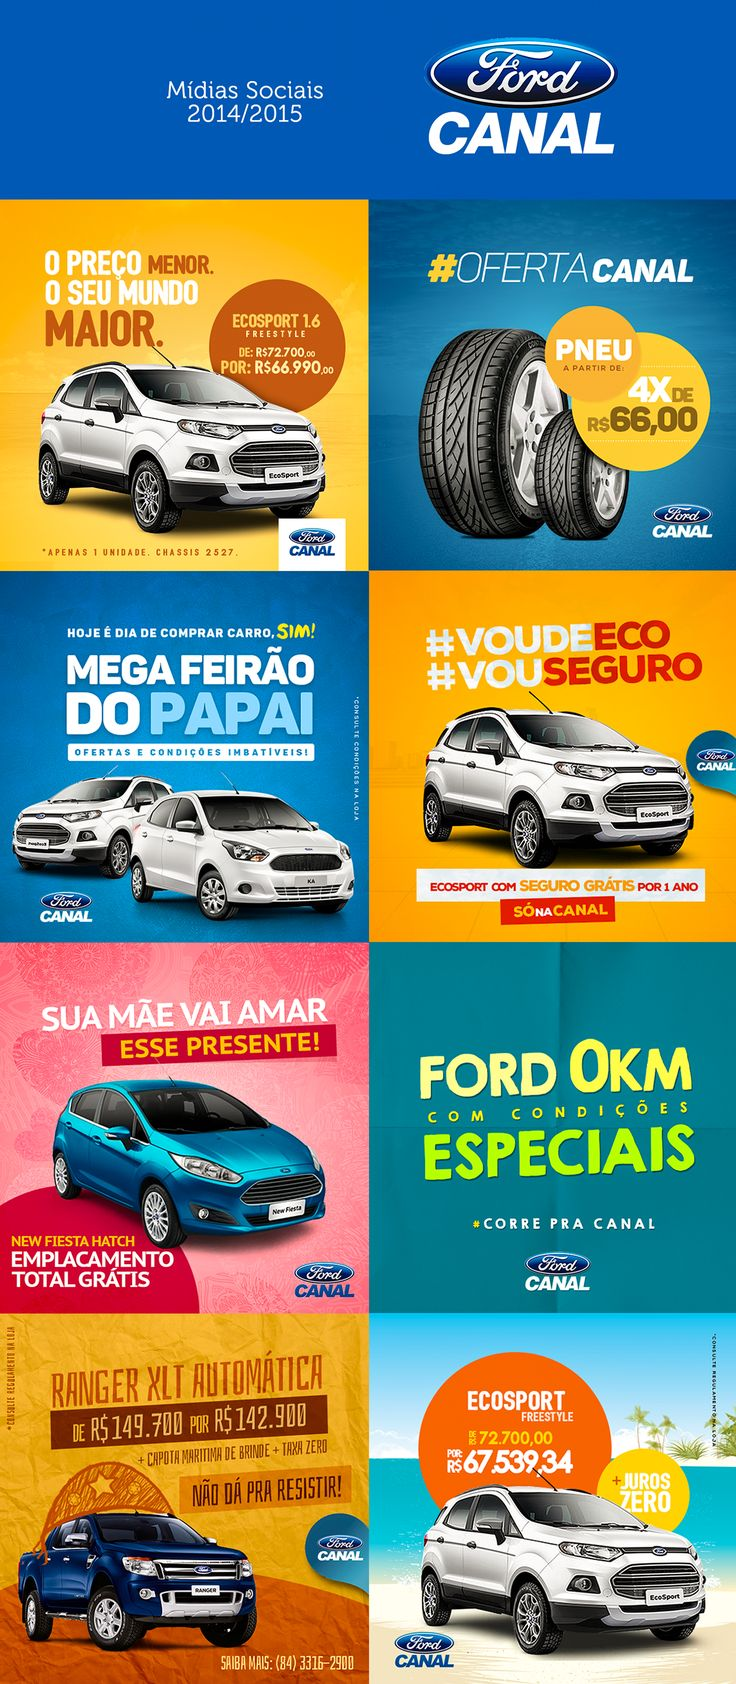 Canal Ford - Social Media on Behance